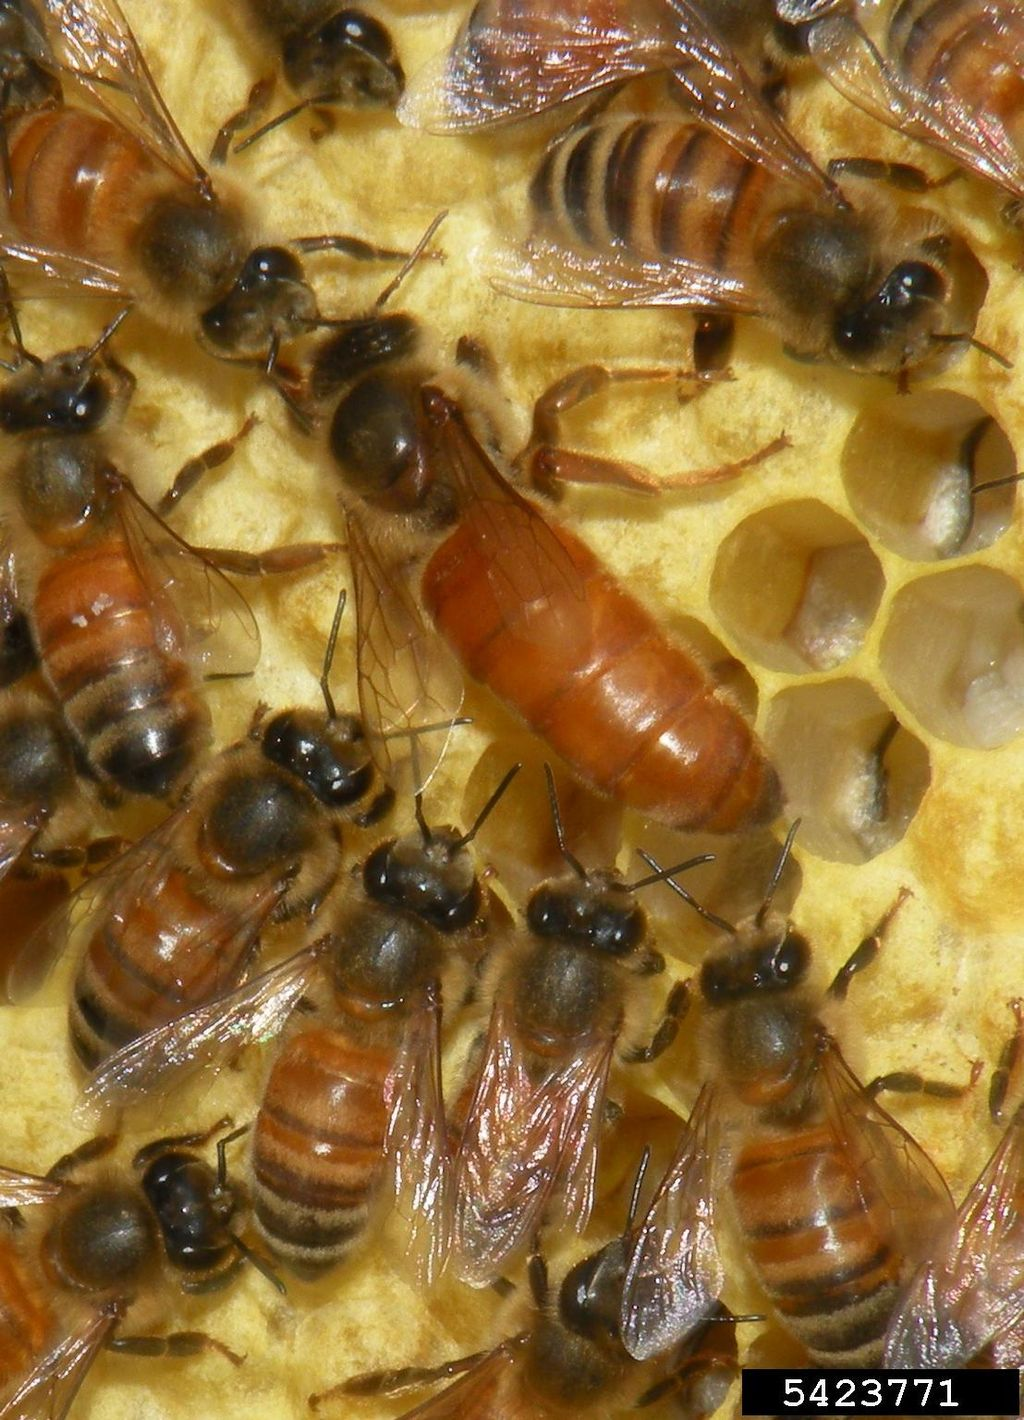 1024px-Apis_mellifera_(queen_and_workers).jpg